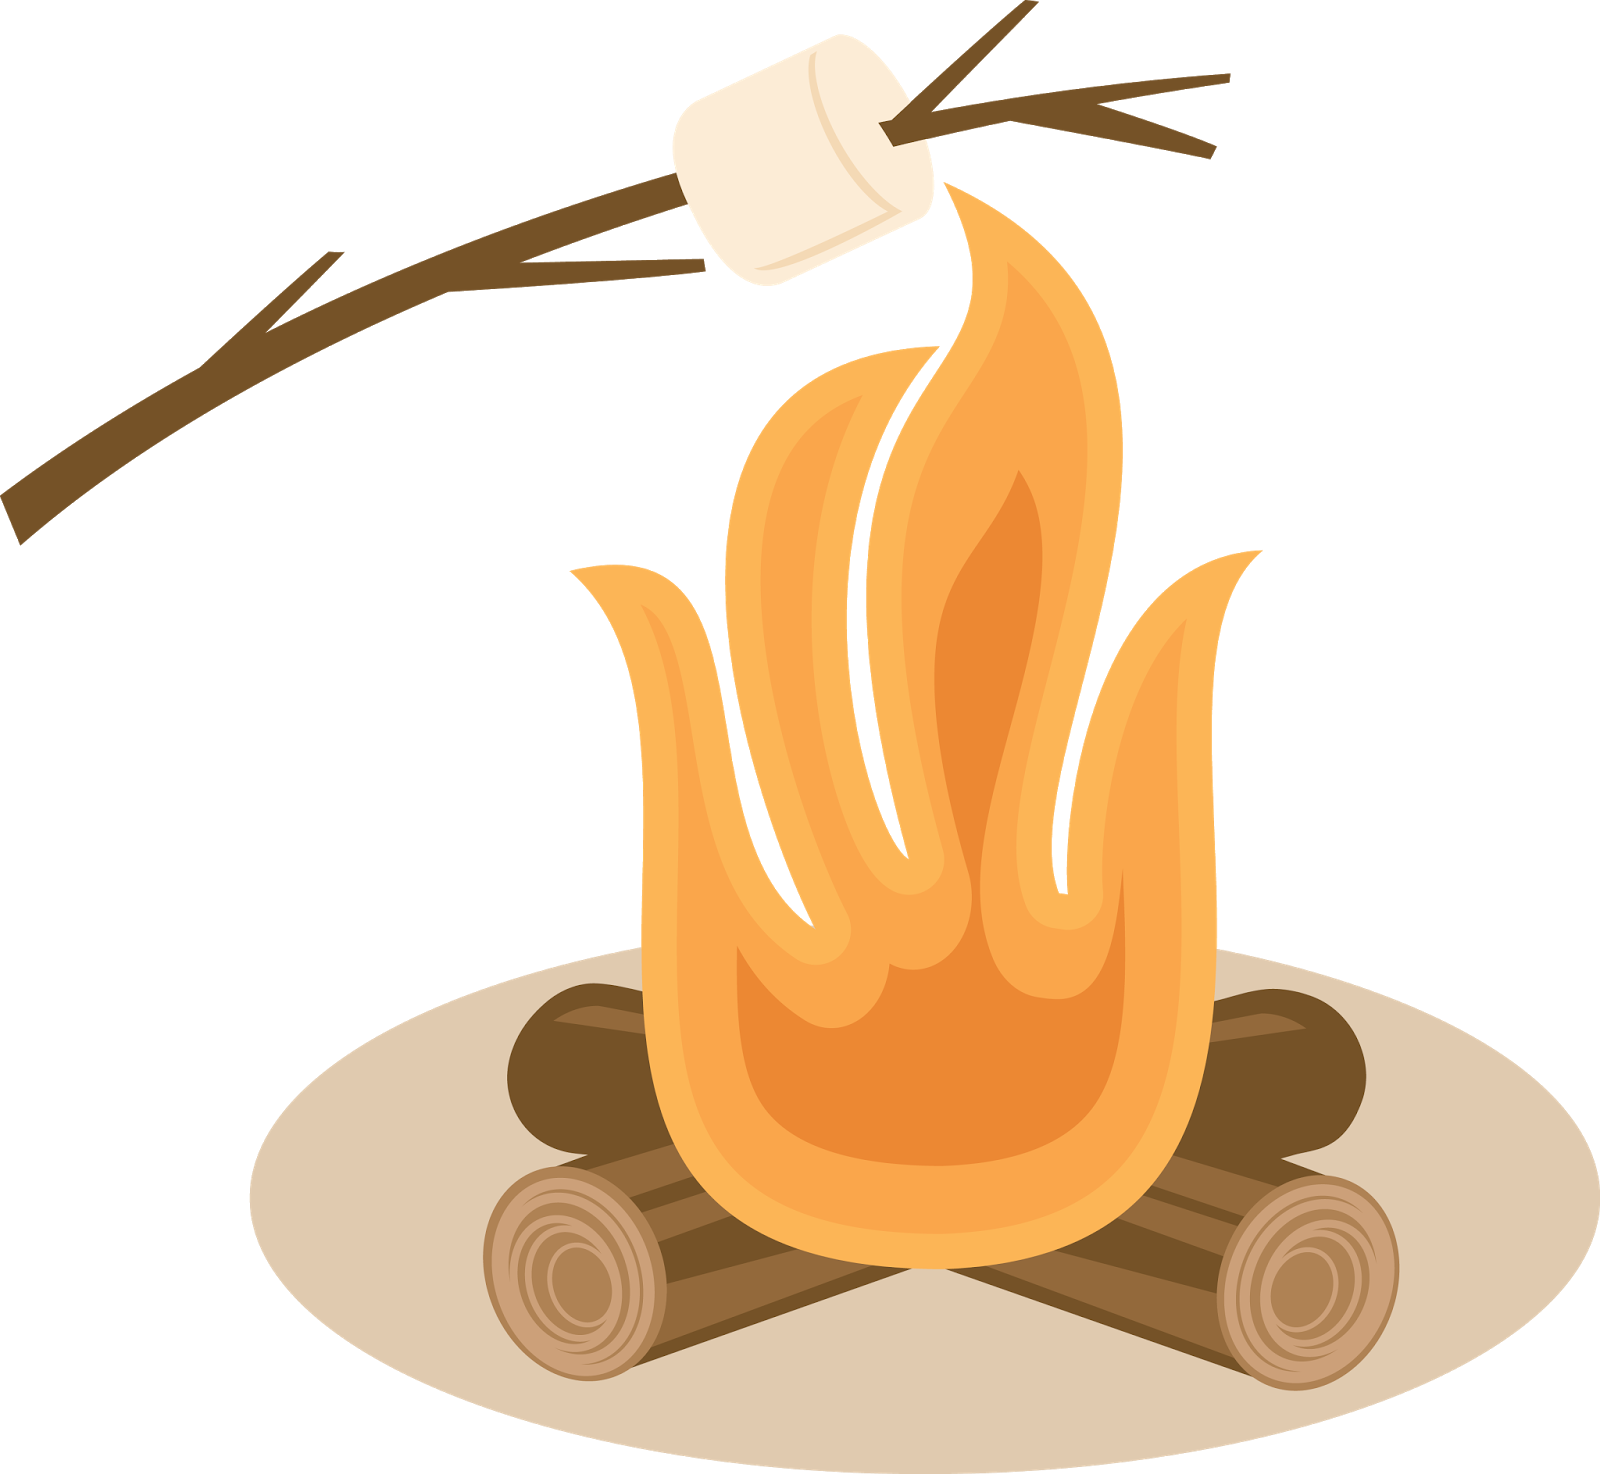 Clipart fire smore. S more toast marshmallow